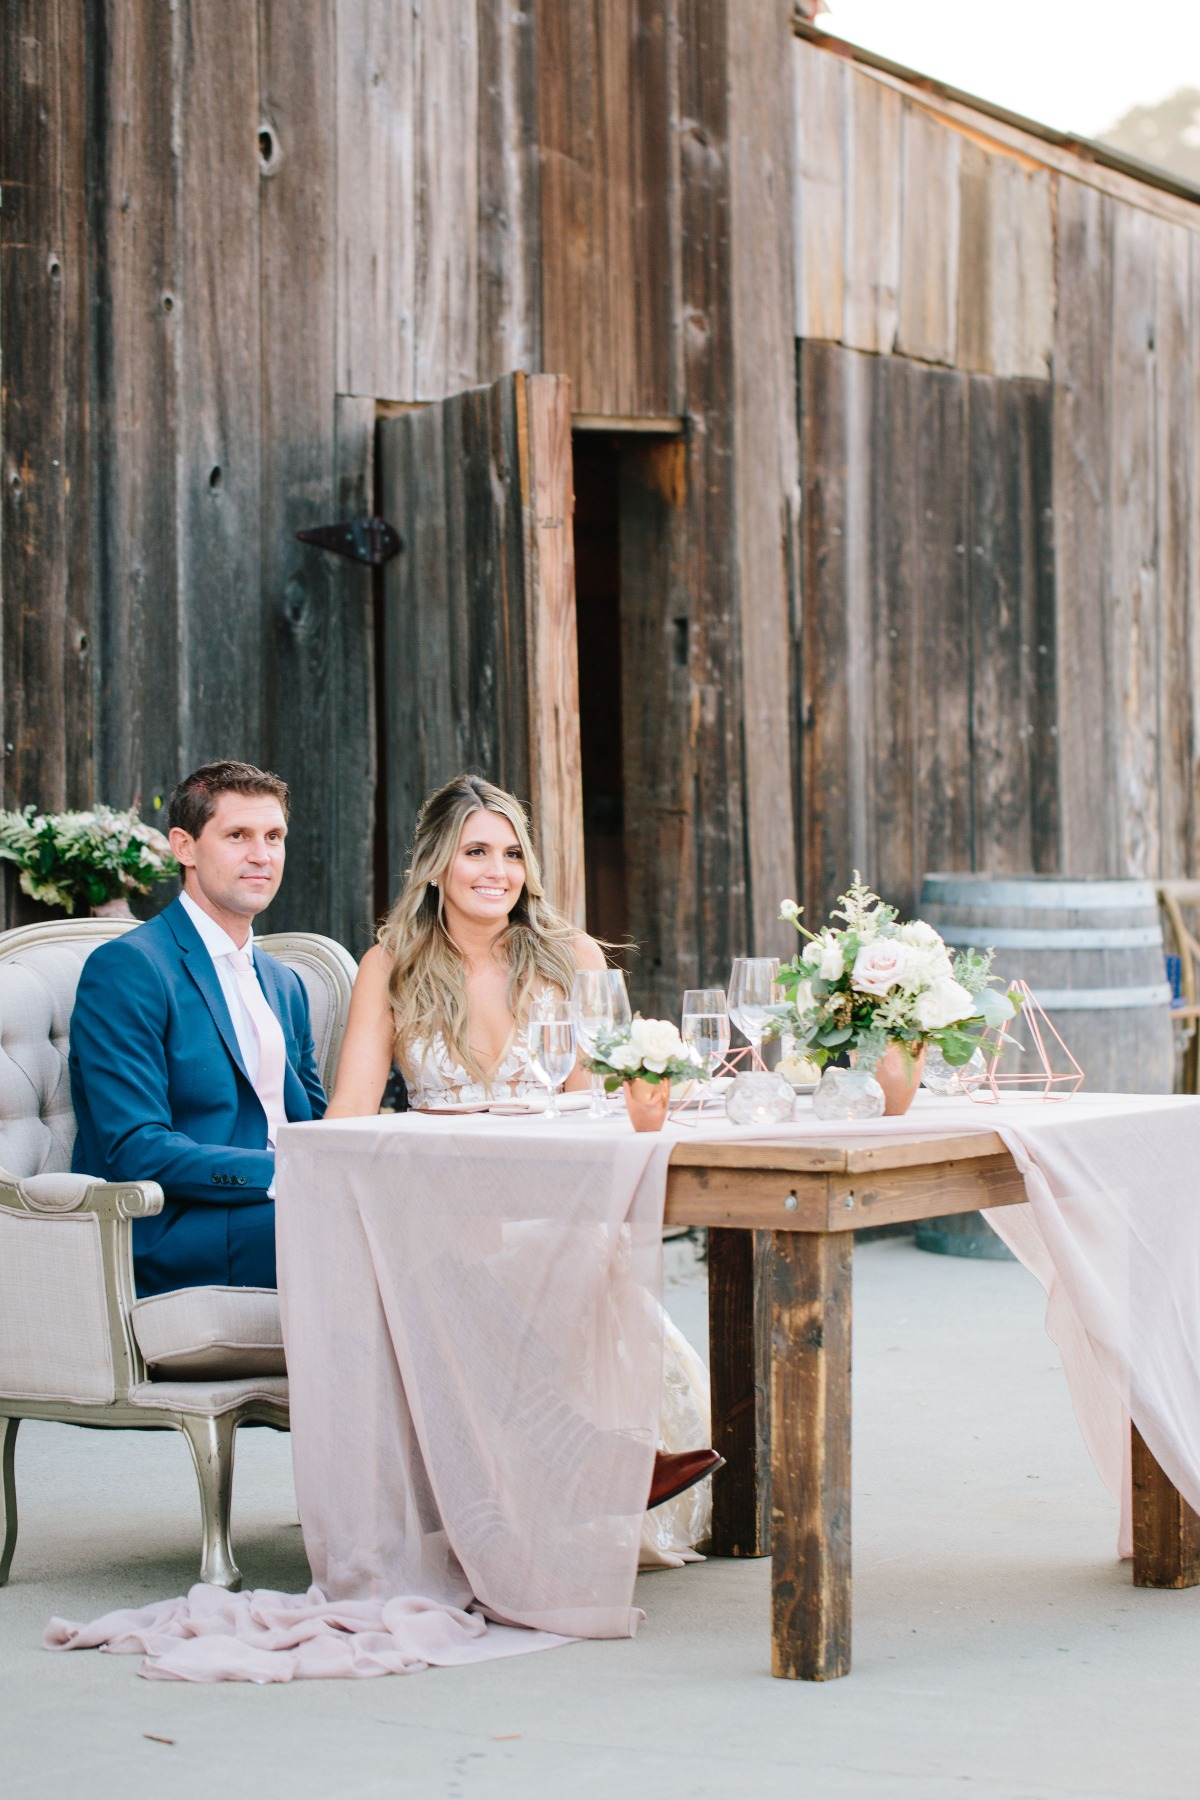 Rustic sweetheart table